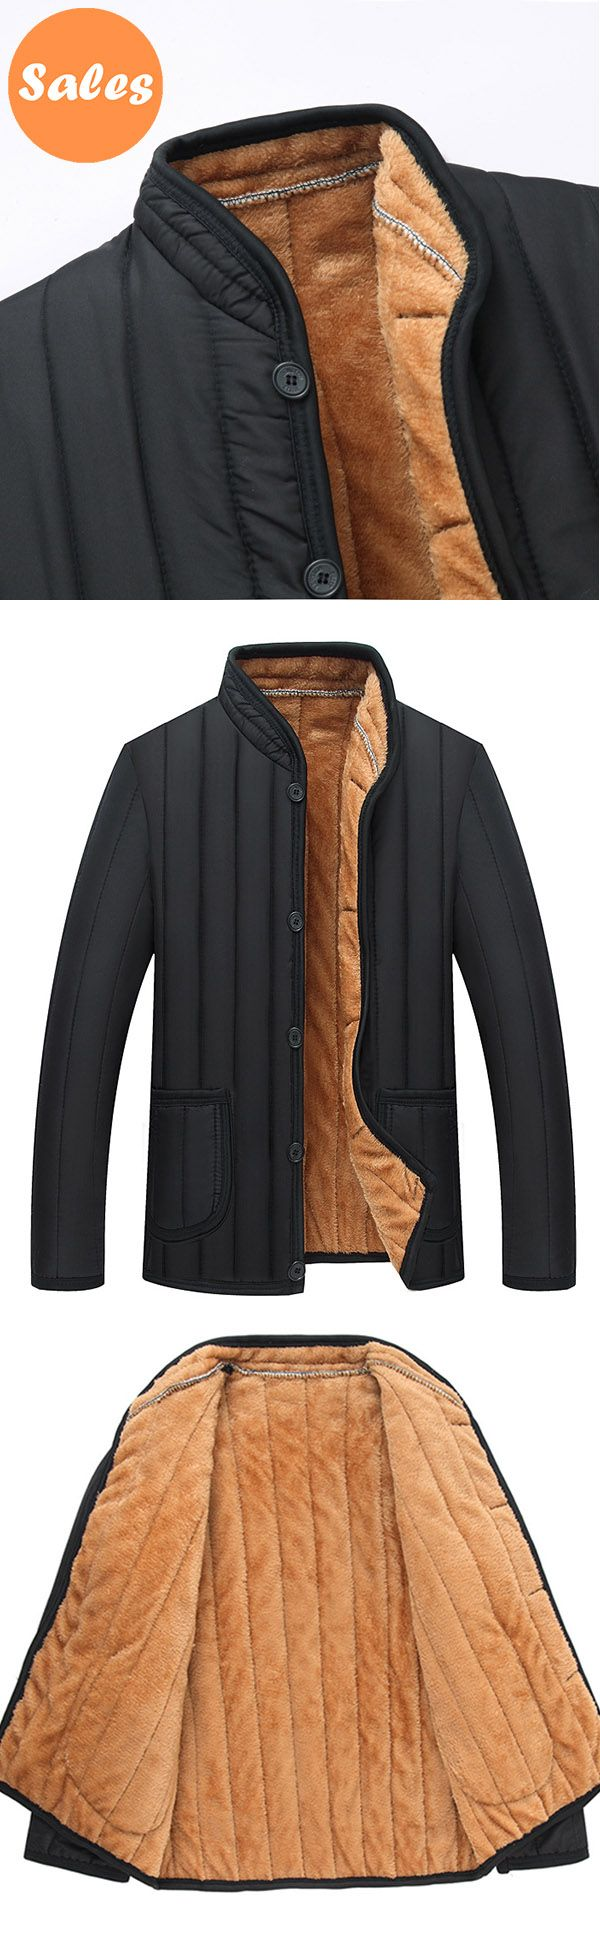 Mens Winter Black Fleece Thick Warm Solid Color Stand Collar Jacket. #men #fashion